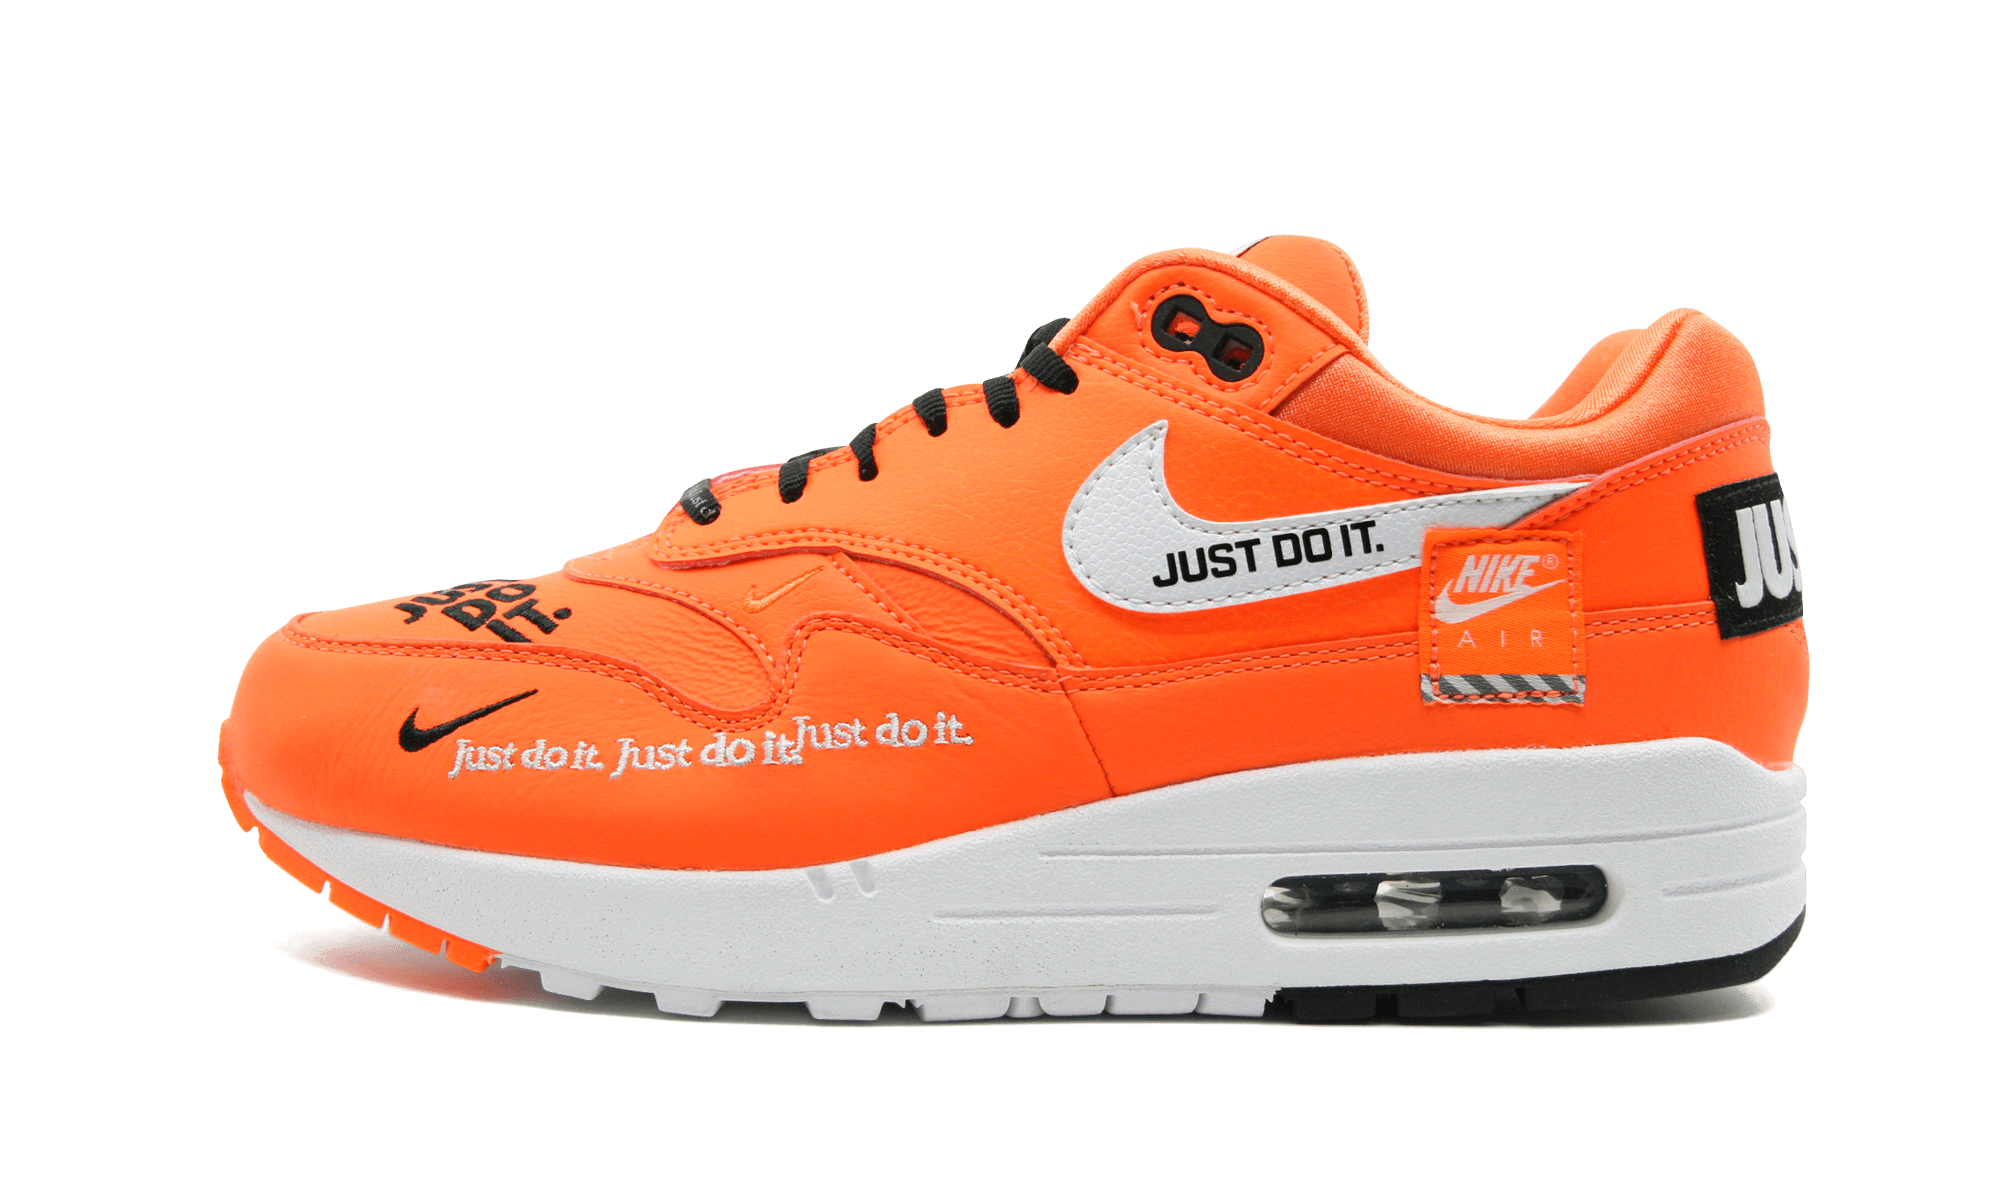 super popular b8bdb 2eaff Womens Air Max 1 LX 917691 800 WMNS Air Max 1 LX SKU  917691 800 Color   Orange